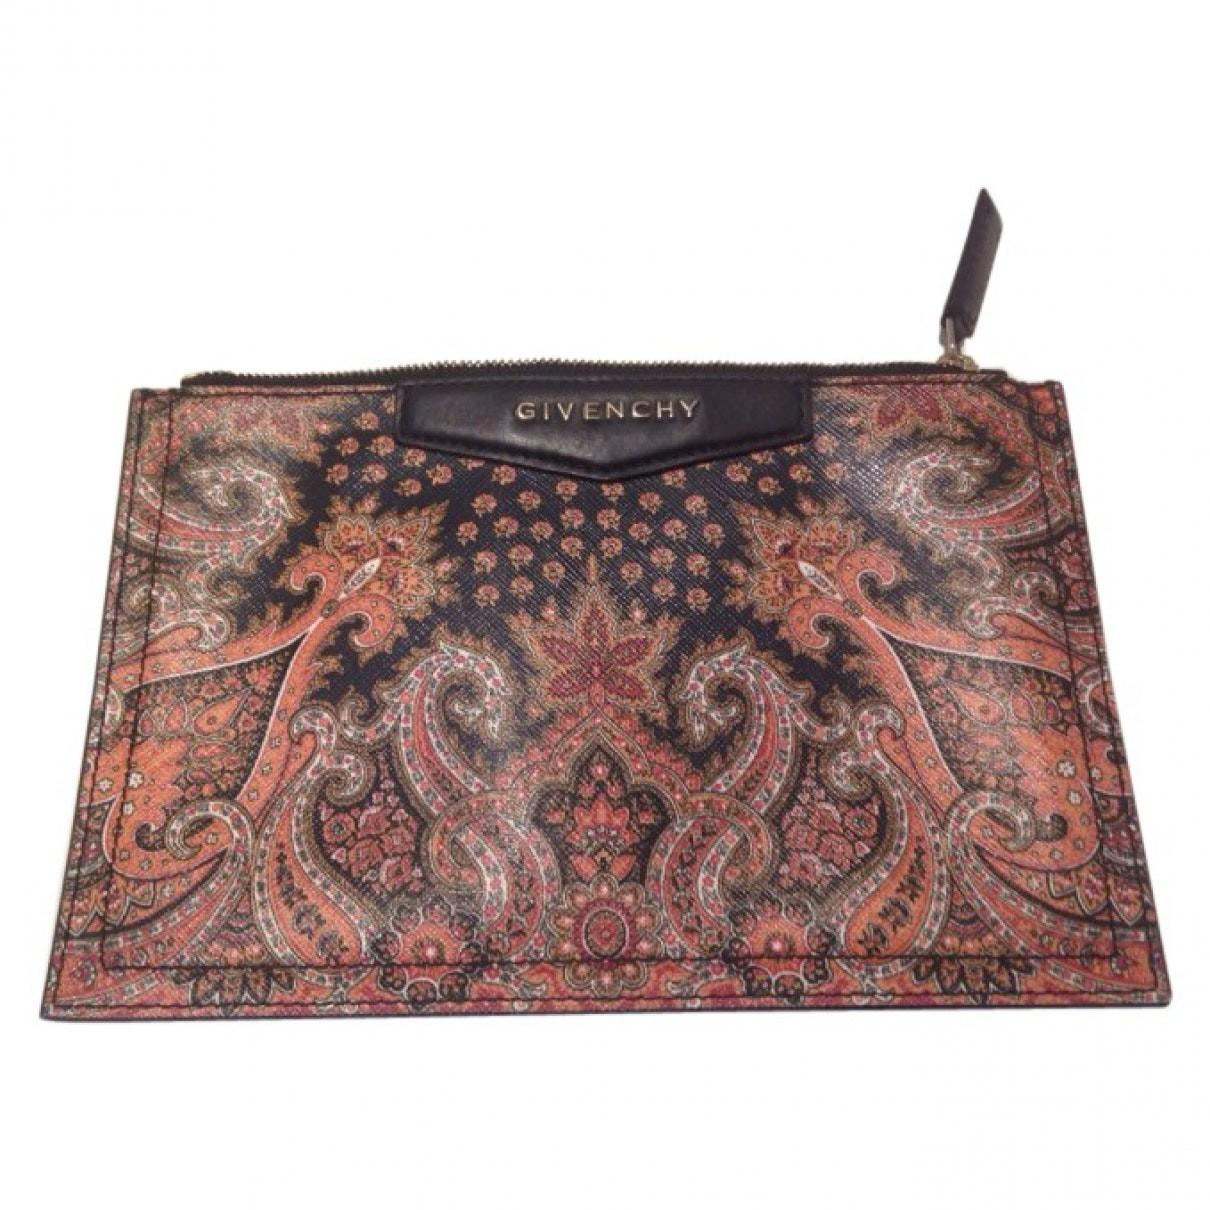 Pink Floral Givenchy Clutch Bag Vestiaire Collective